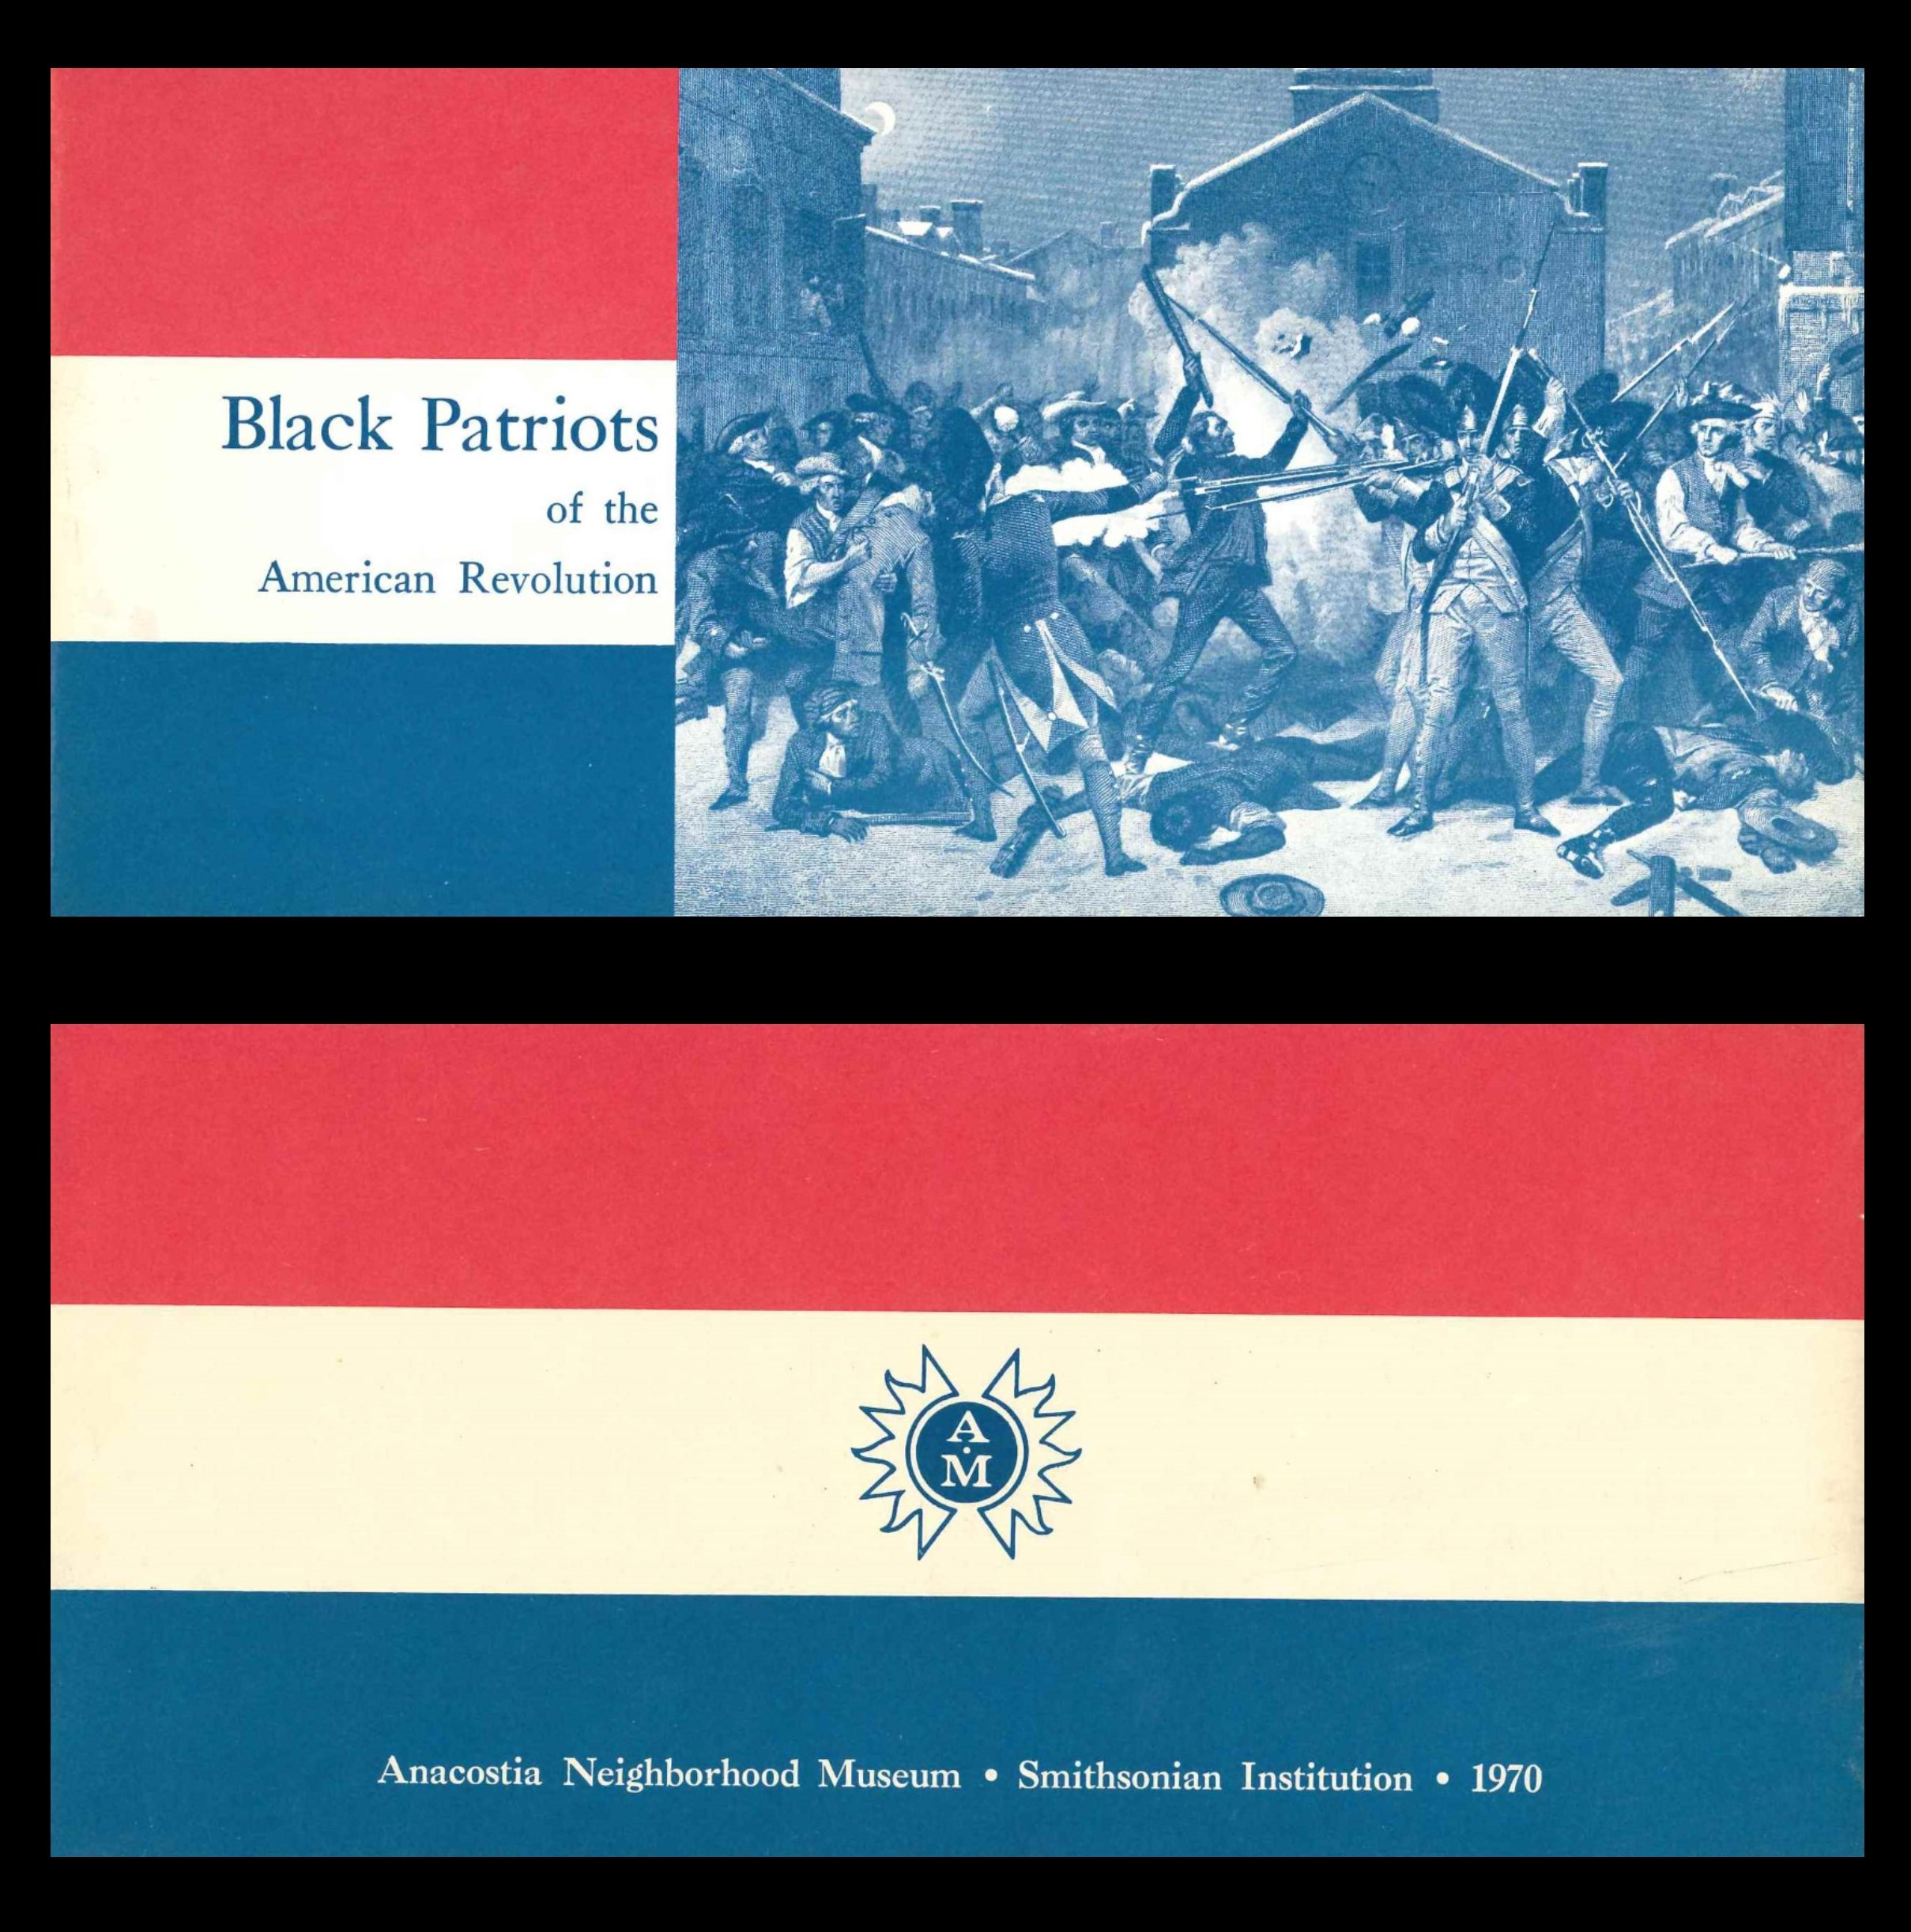 Exhibition brochure - Black Patriots of the American Revolution, 1970.